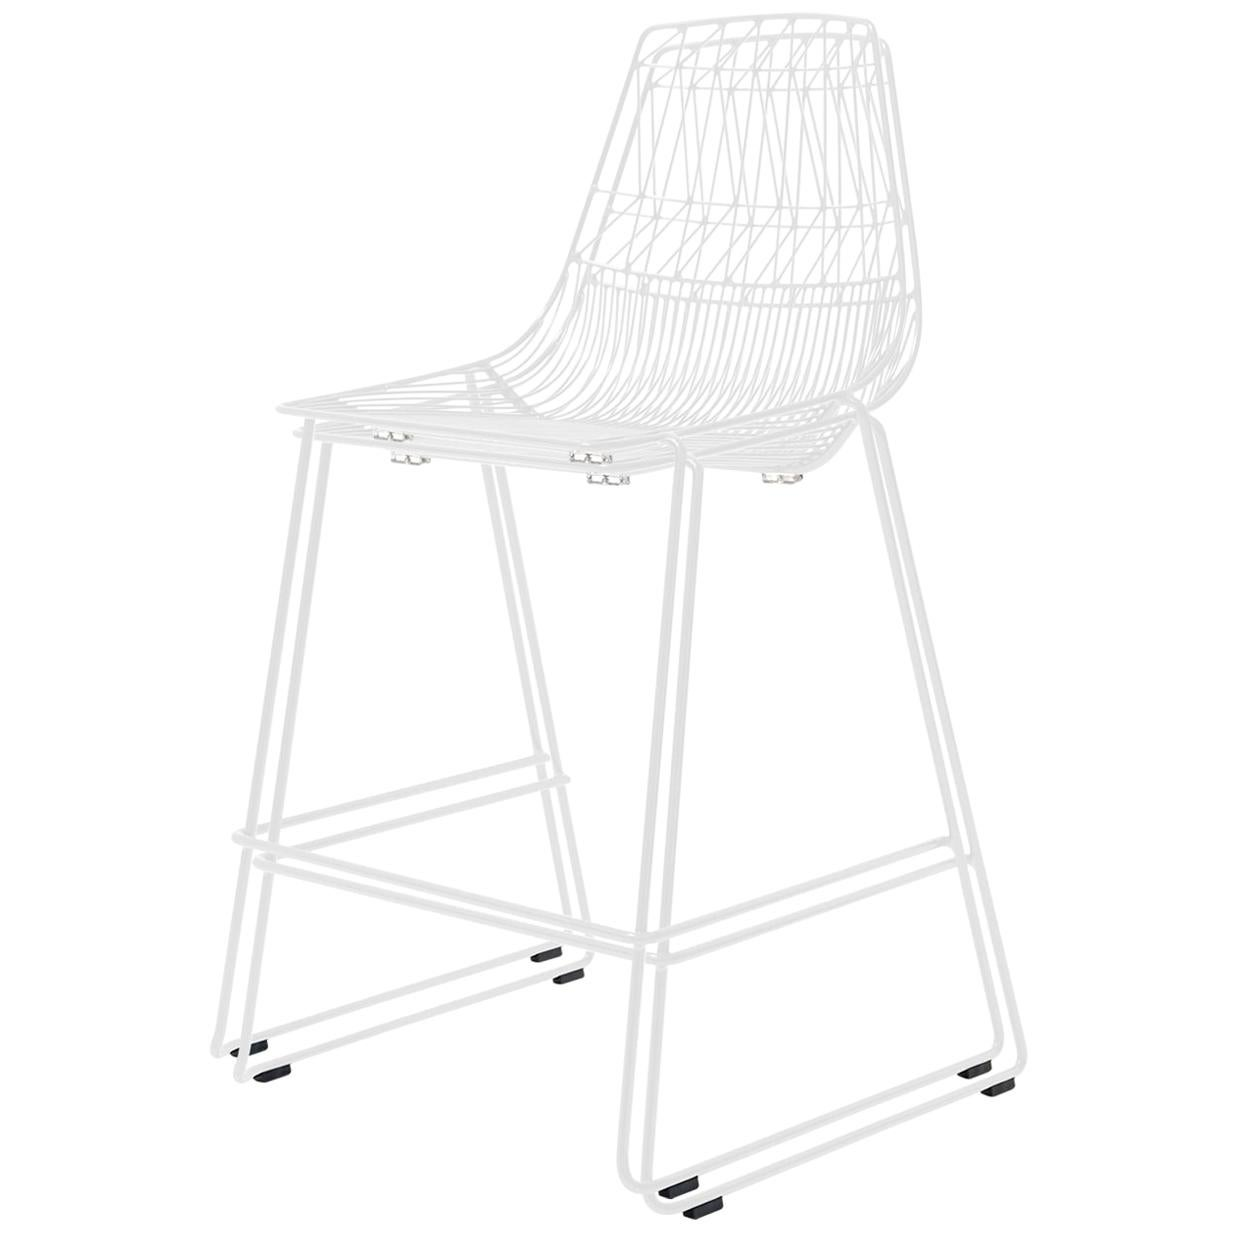 Mid-Century Modern, Minimalist Stacking Counter Stool, Wire Stool in White